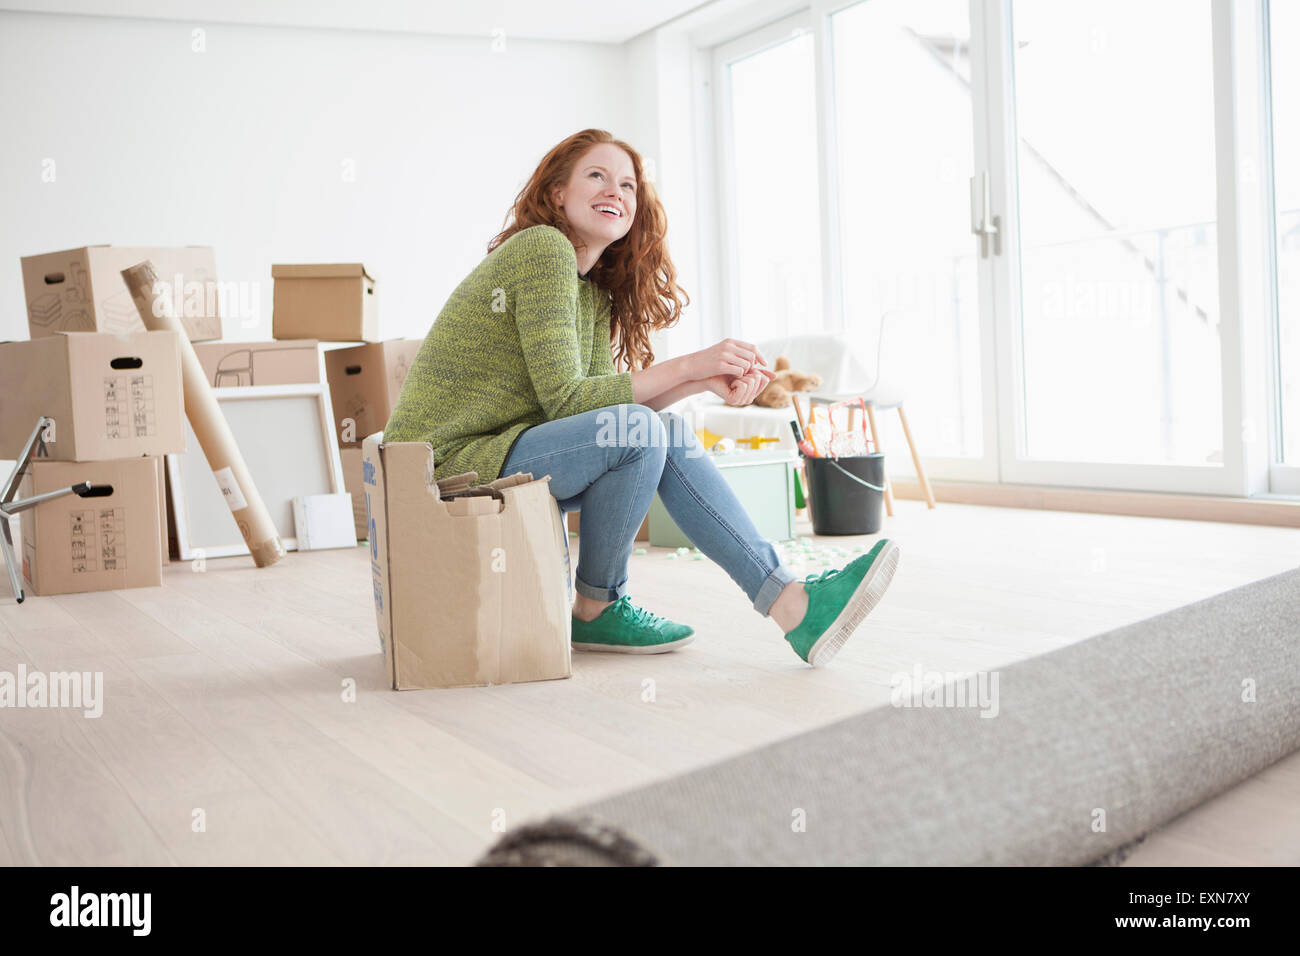 Young woman in new flat sitting on cardboard box - Stock Image